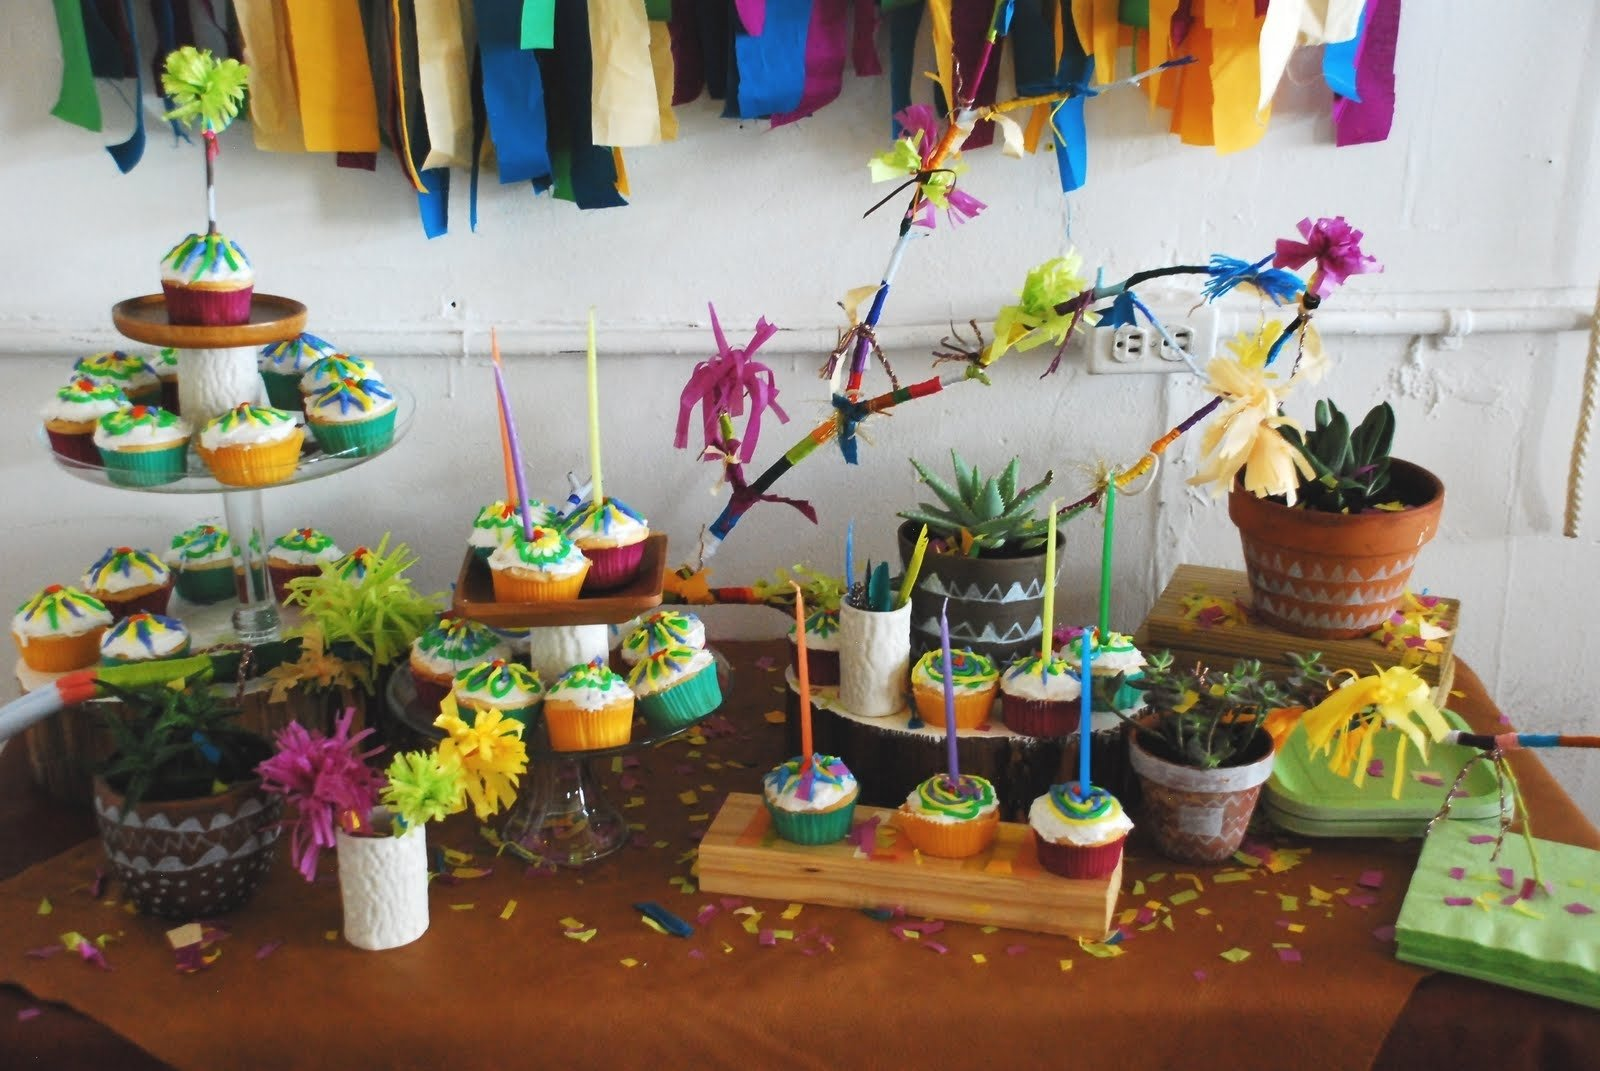 10 Stylish Party Ideas For 13 Year Old Boy themes birthday good ideas for a 13 year old birthday party boy 1